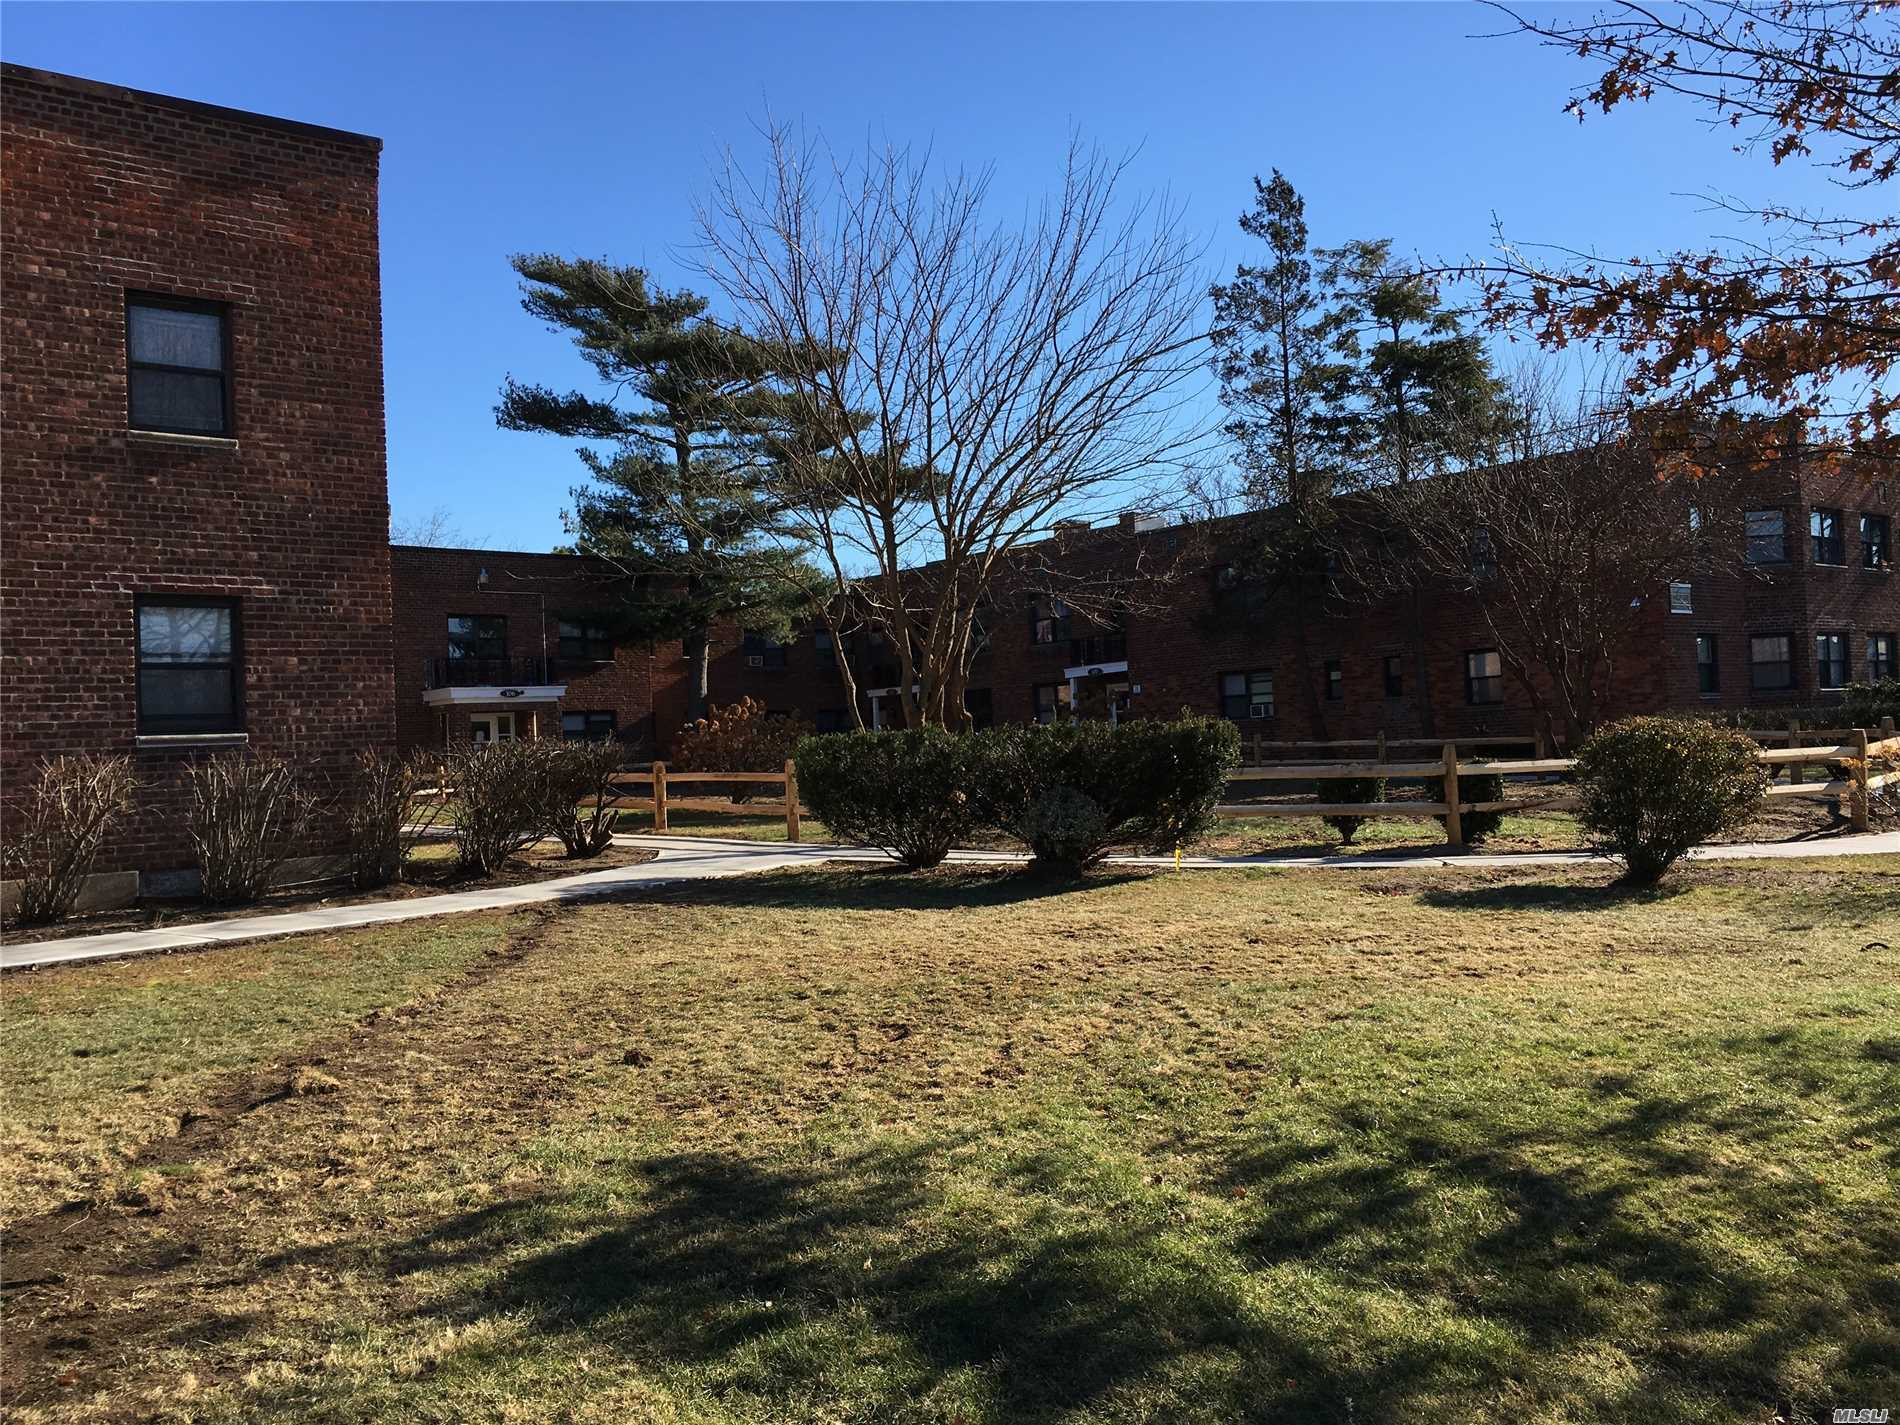 Studio Apartment Garden Complex, 2nd Floor;  Coin Operated Laundry Facilities